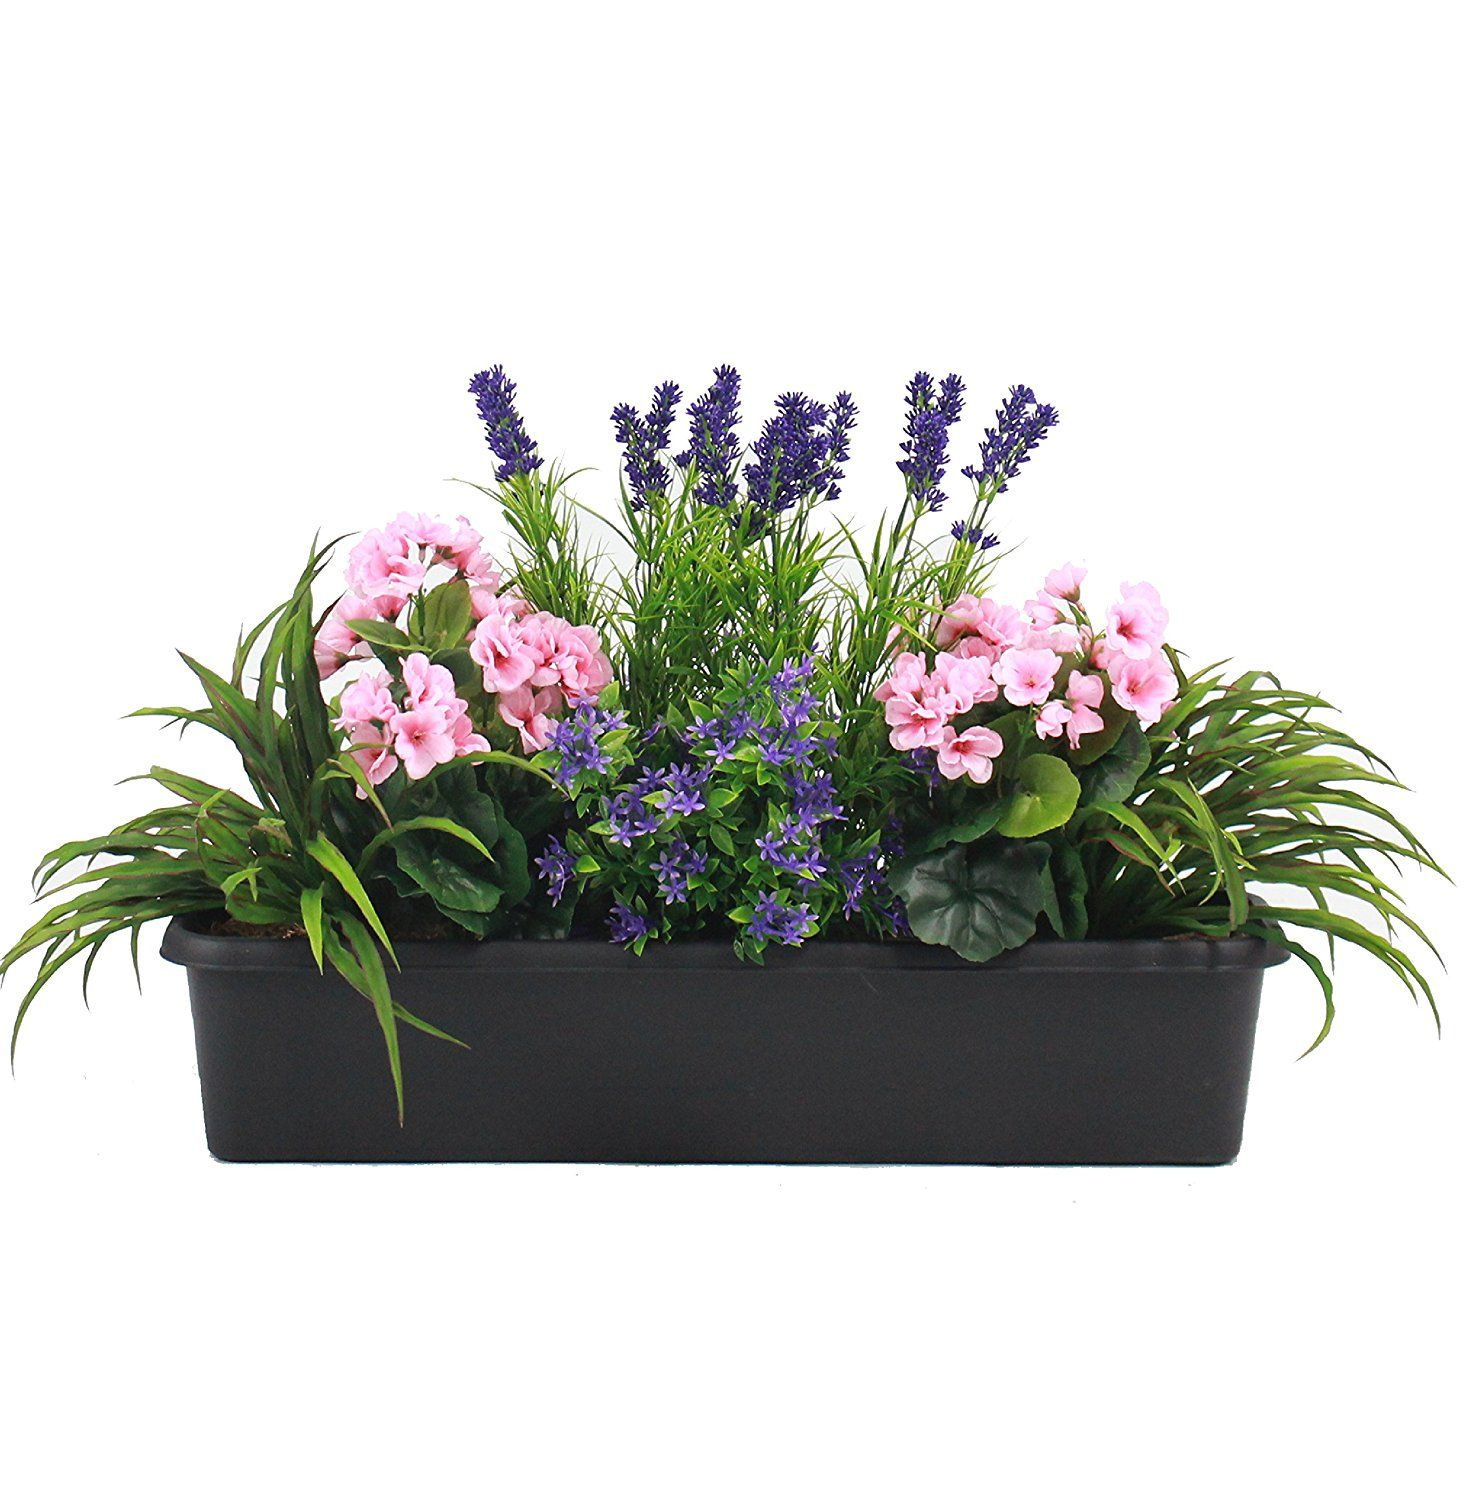 Artificial Mixed Flower Window Box Trough Container with